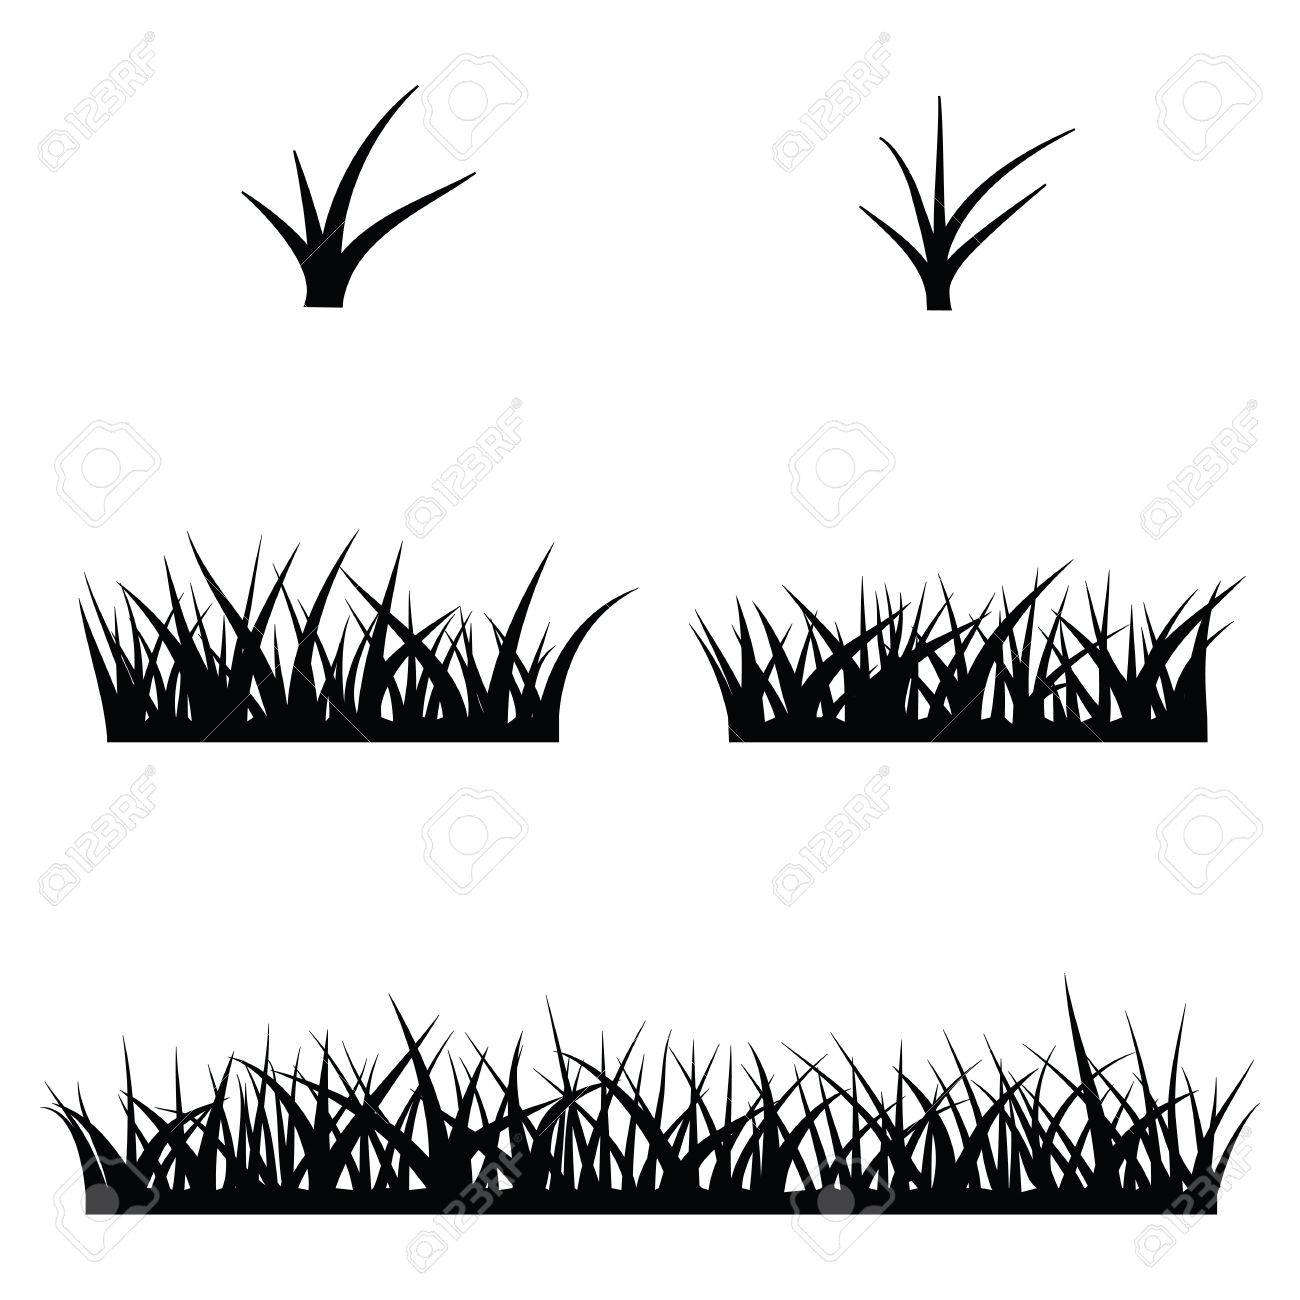 black silhouette of grass royalty free cliparts vectors and stock illustration image 54938067 black silhouette of grass